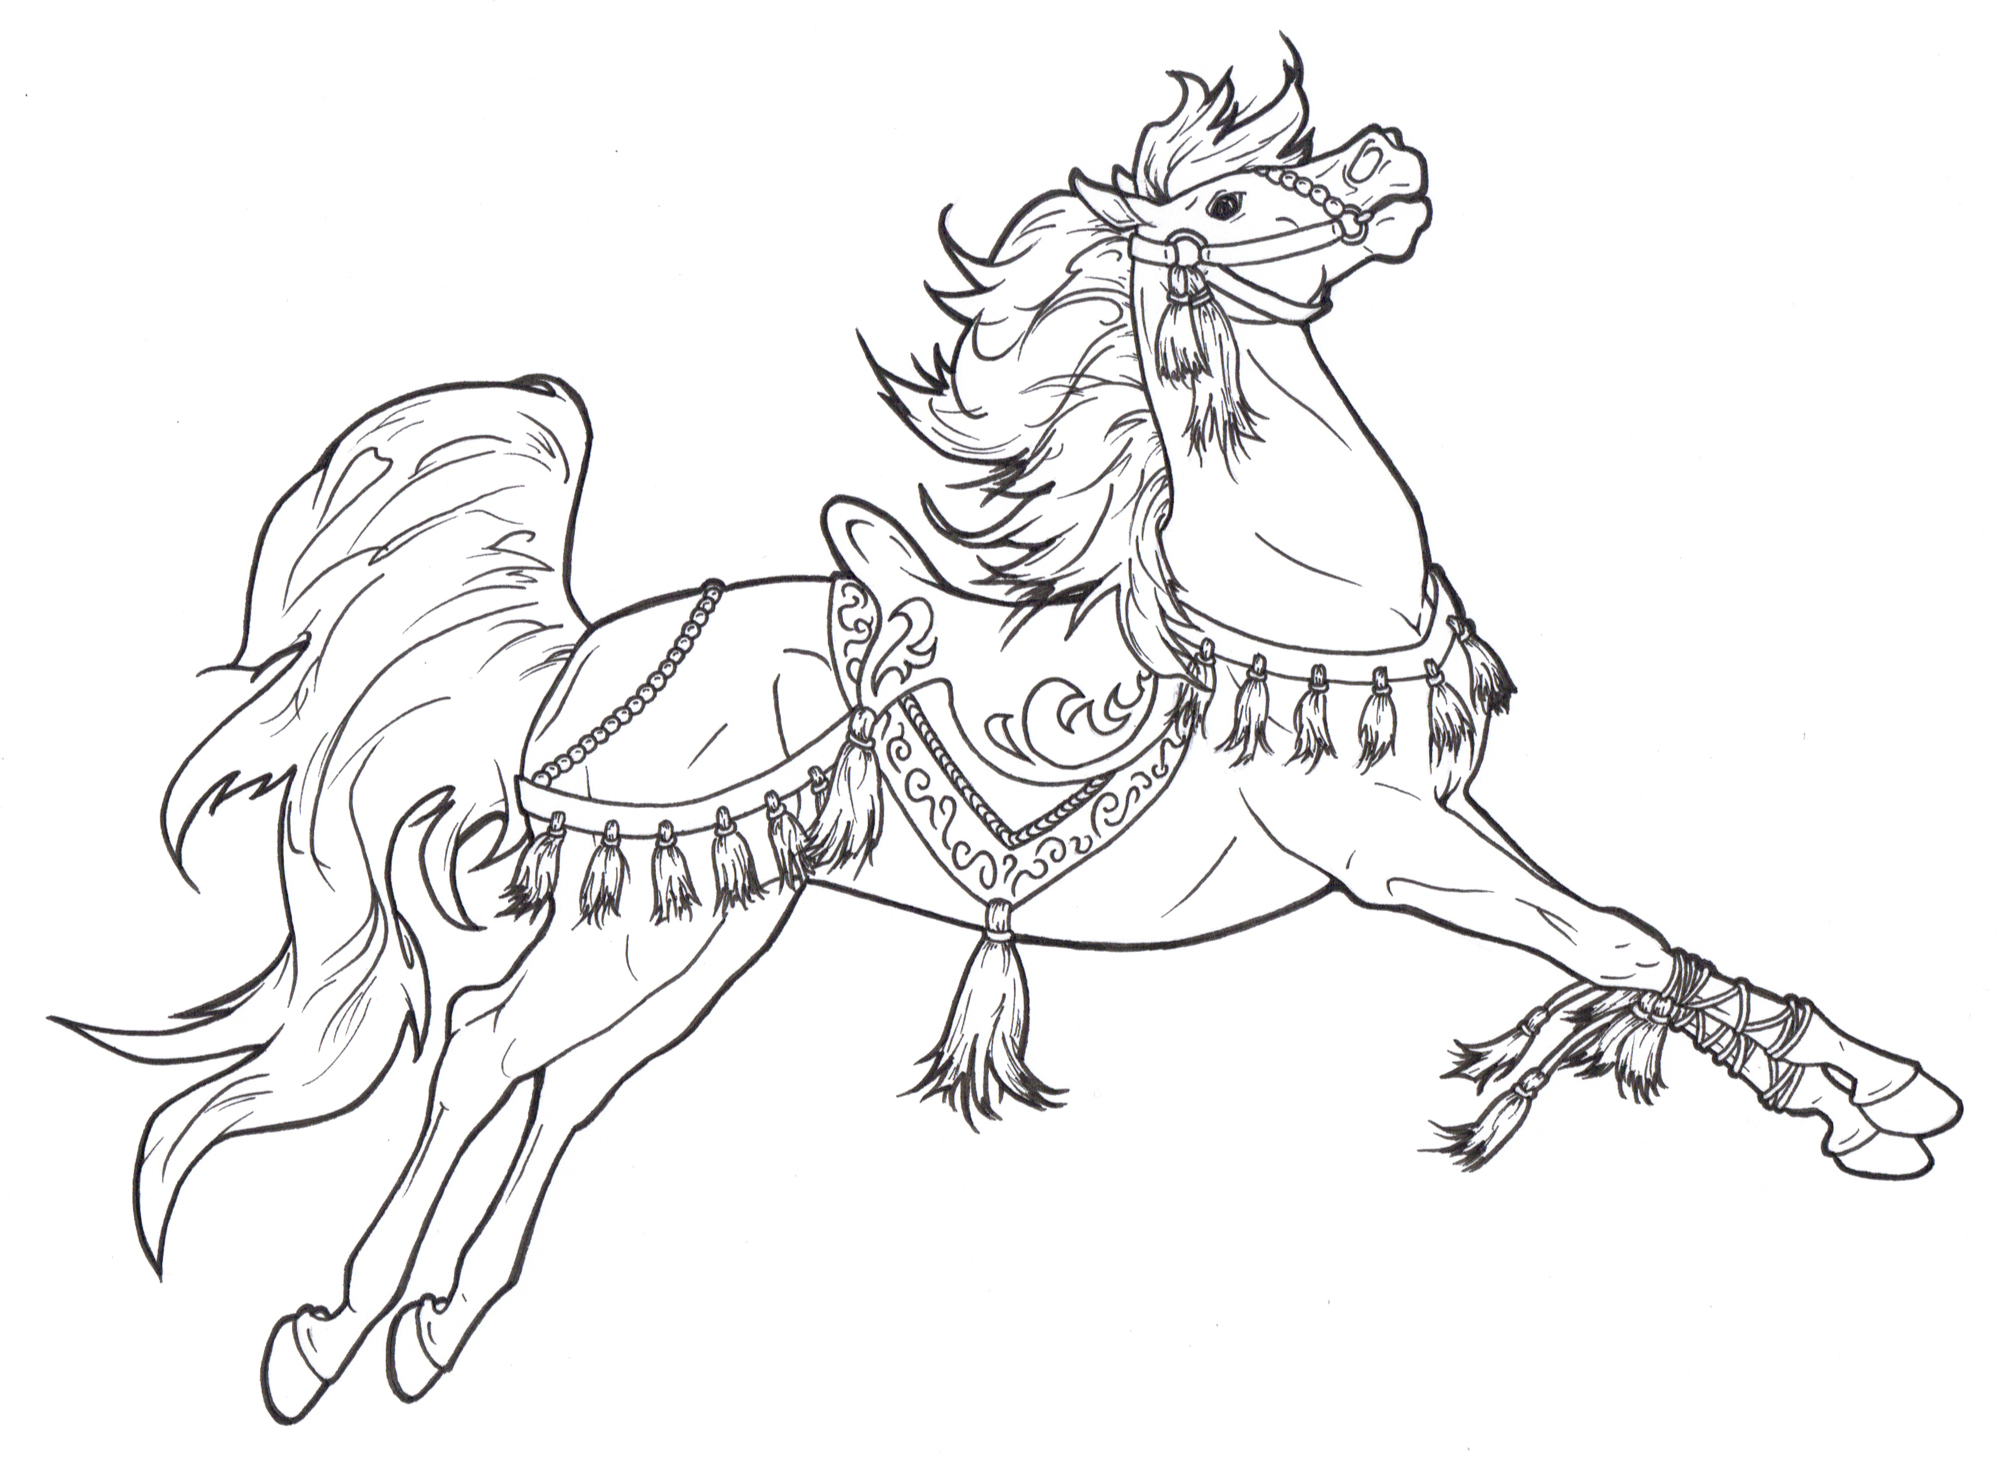 2000x1461 Carousel Horse With Tassels Makes Me Think Of A Heraldic Costume